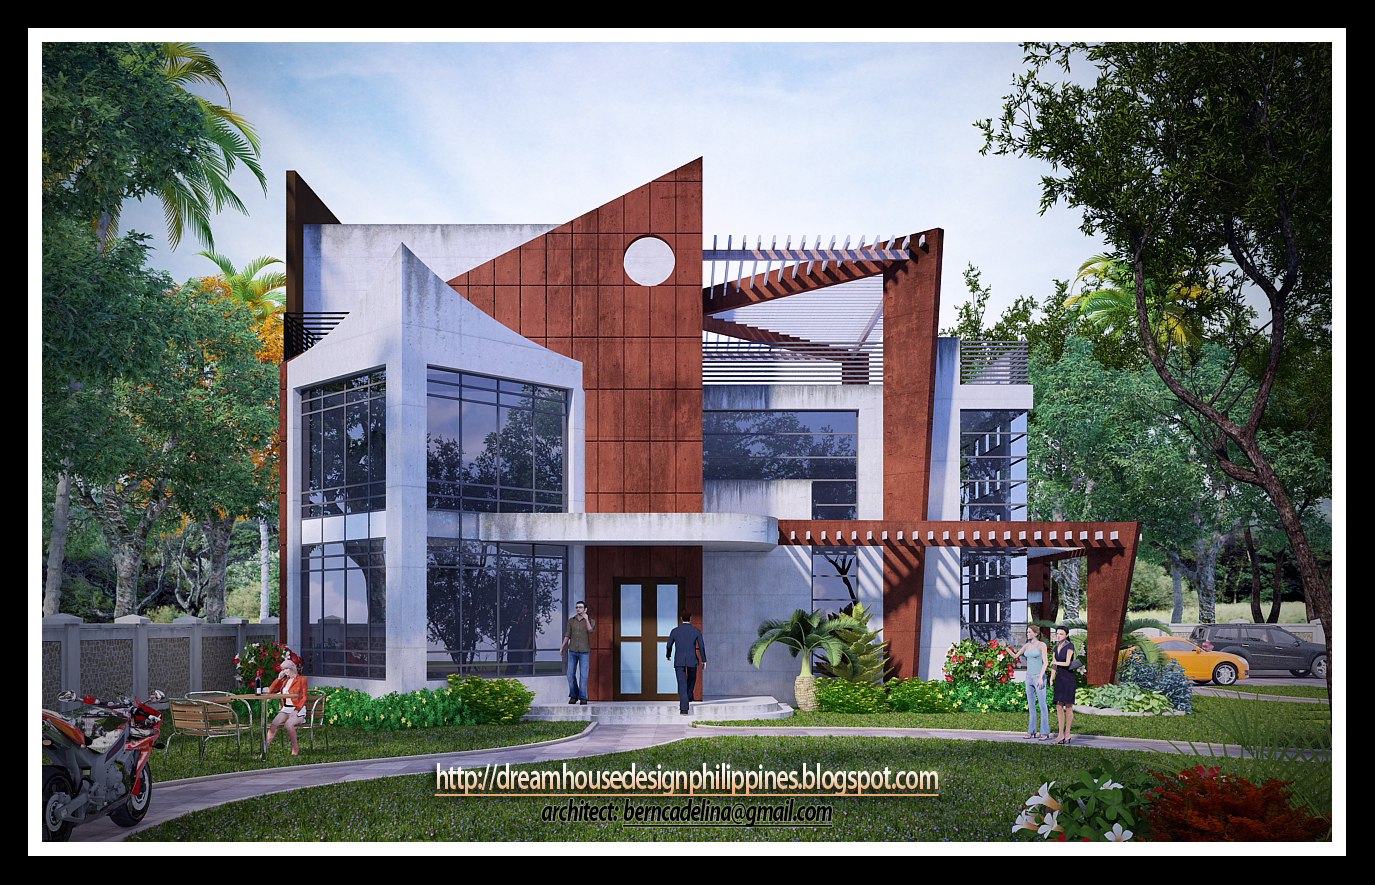 House designs philippines architect bill house plans Modern house design philippines